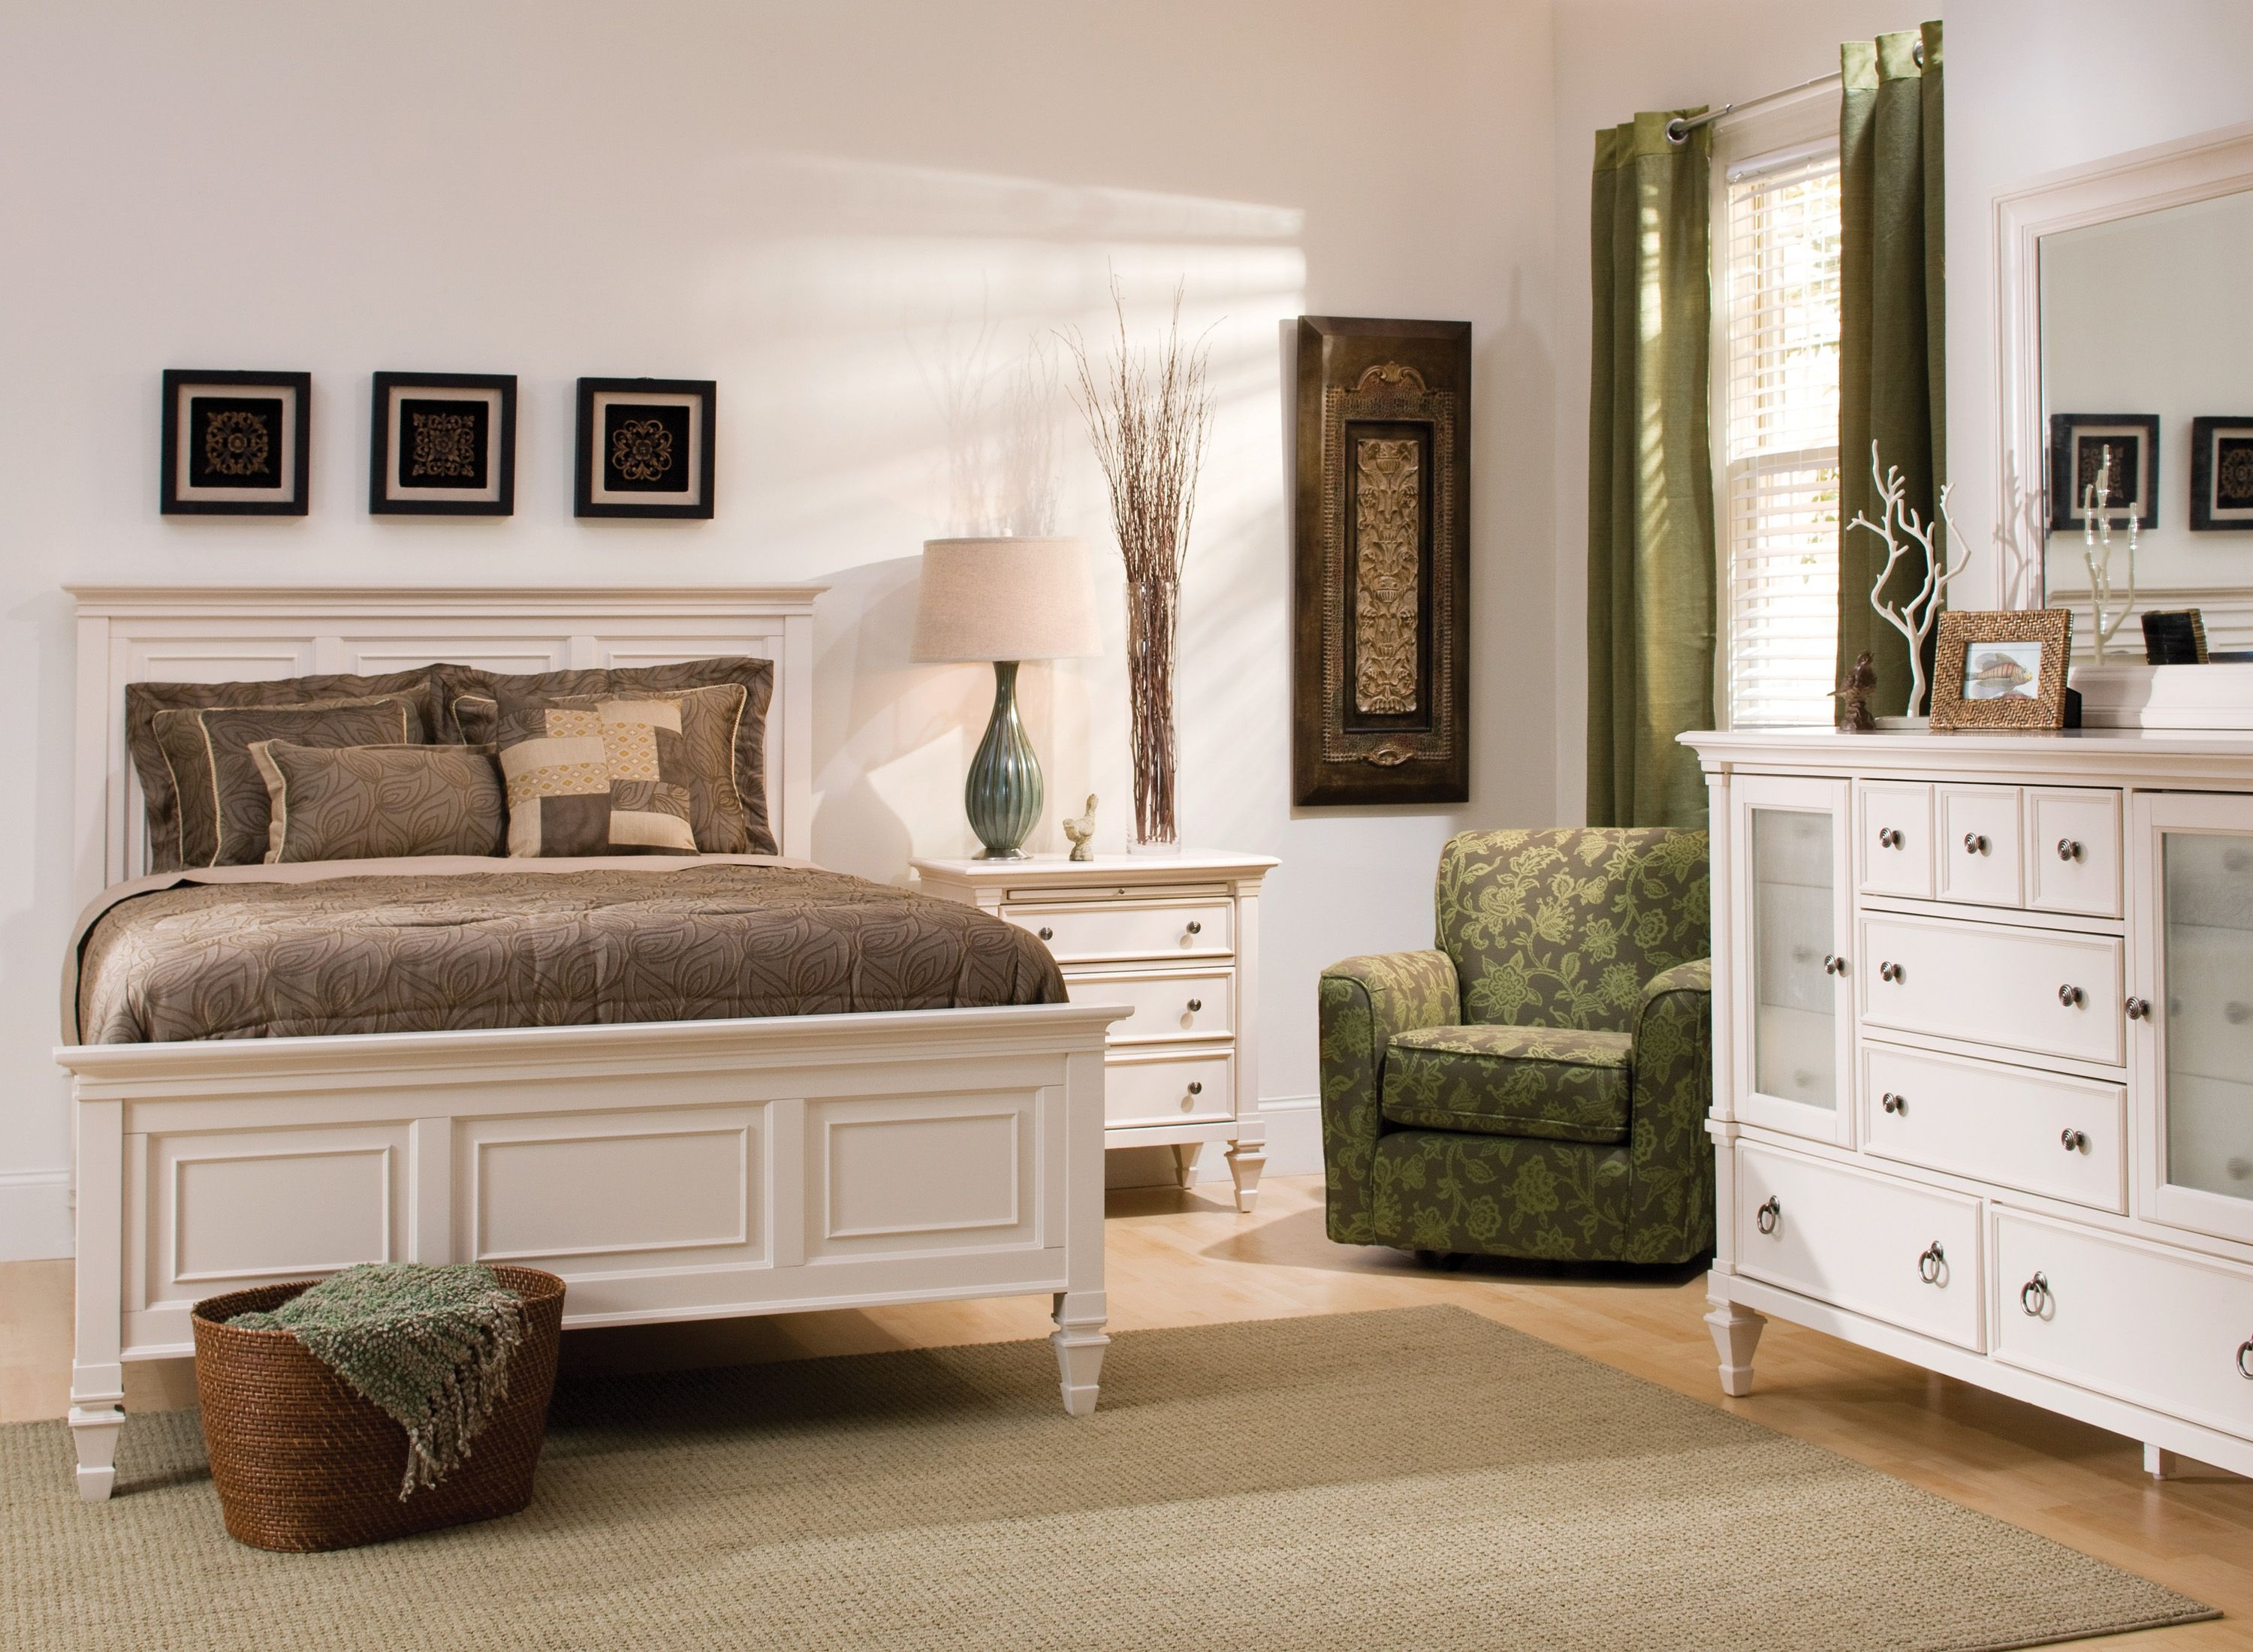 This breathtaking Somerset 4 piece queen bedroom set in alabaster